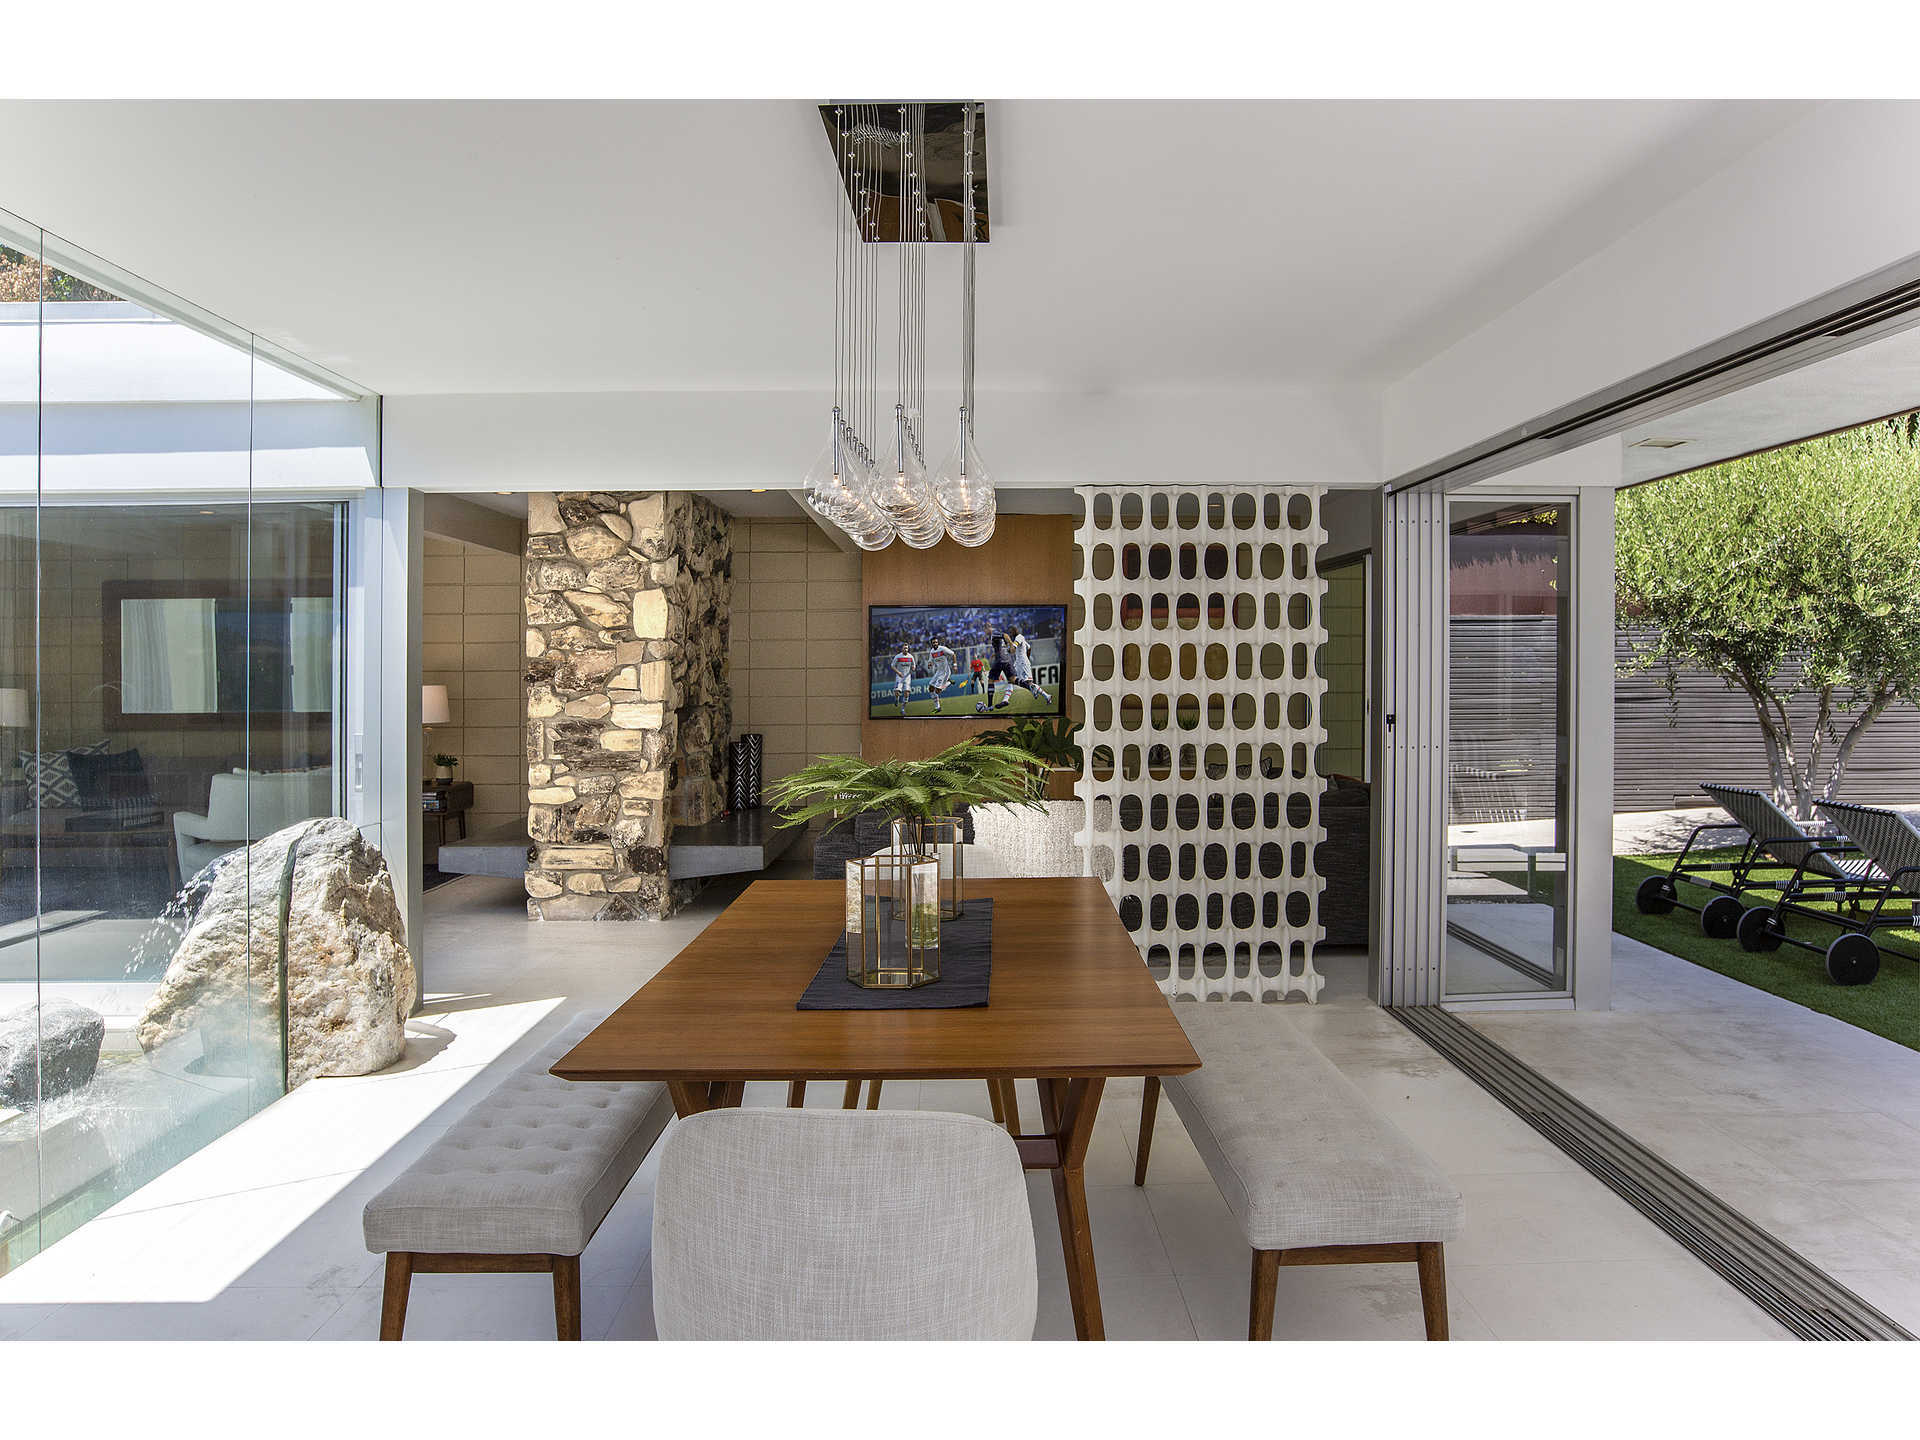 1959 midcentury home in Los Angeles - dining area